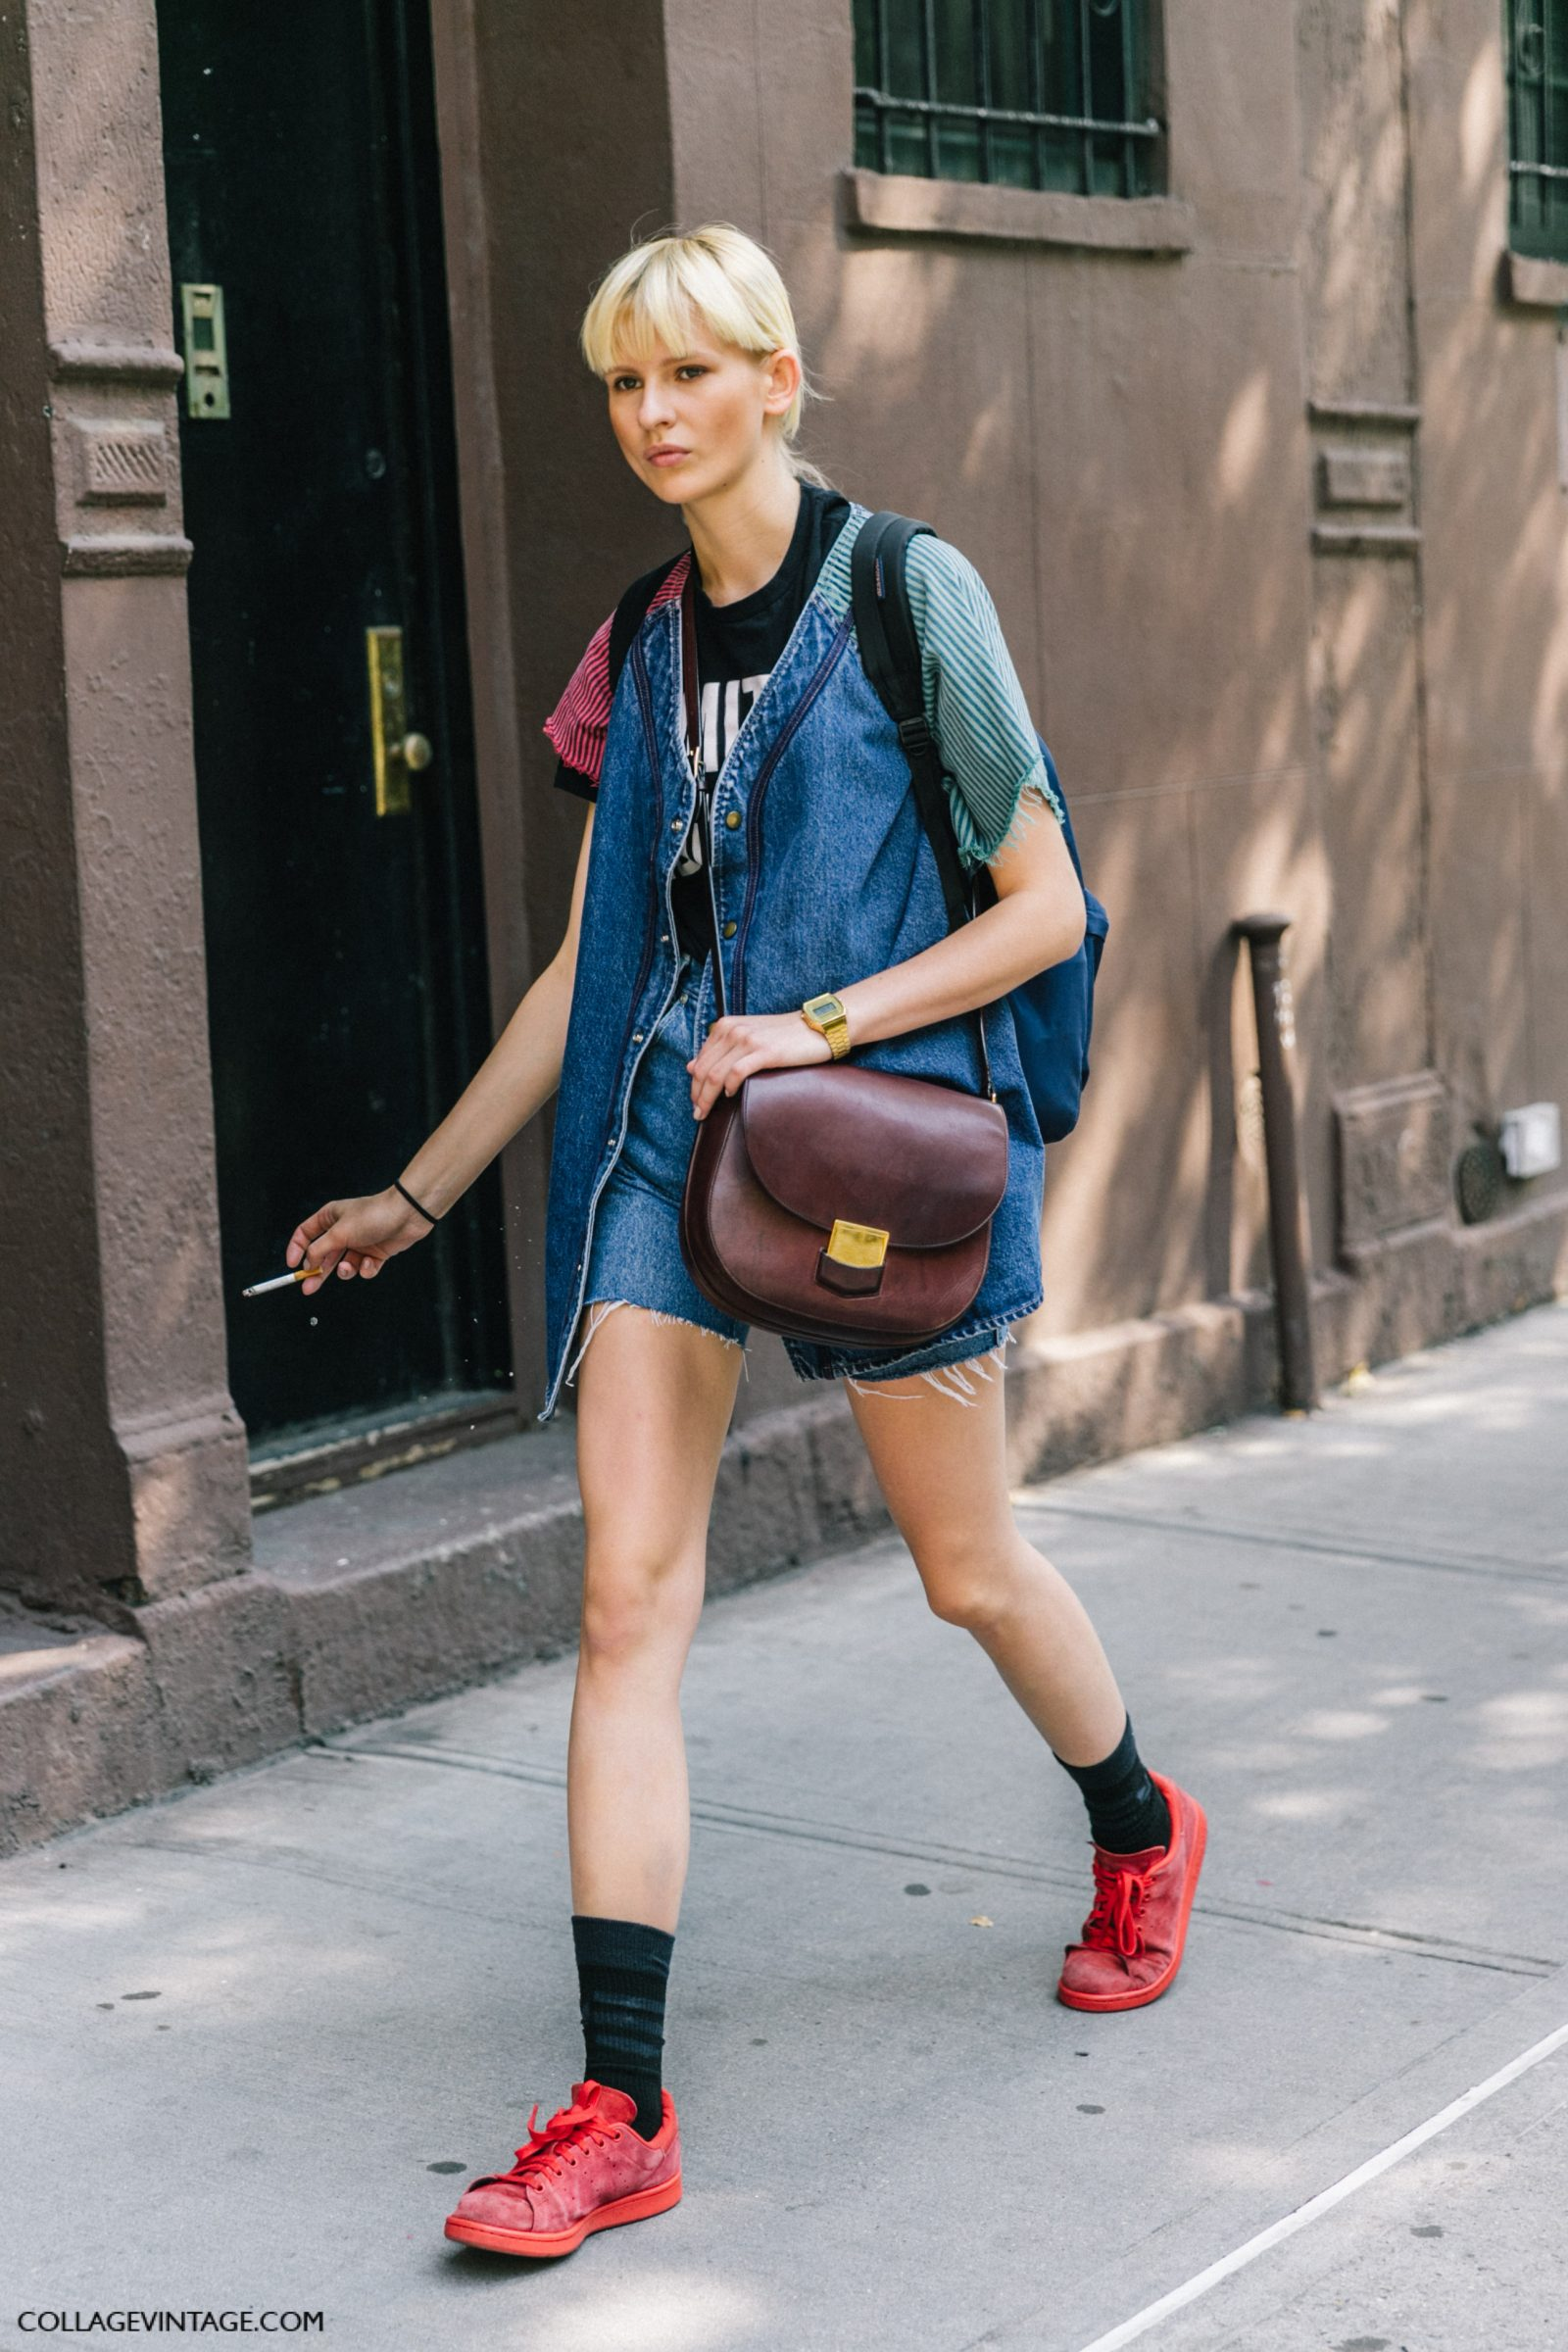 nyfw-new_york_fashion_week_ss17-street_style-outfits-collage_vintage-35